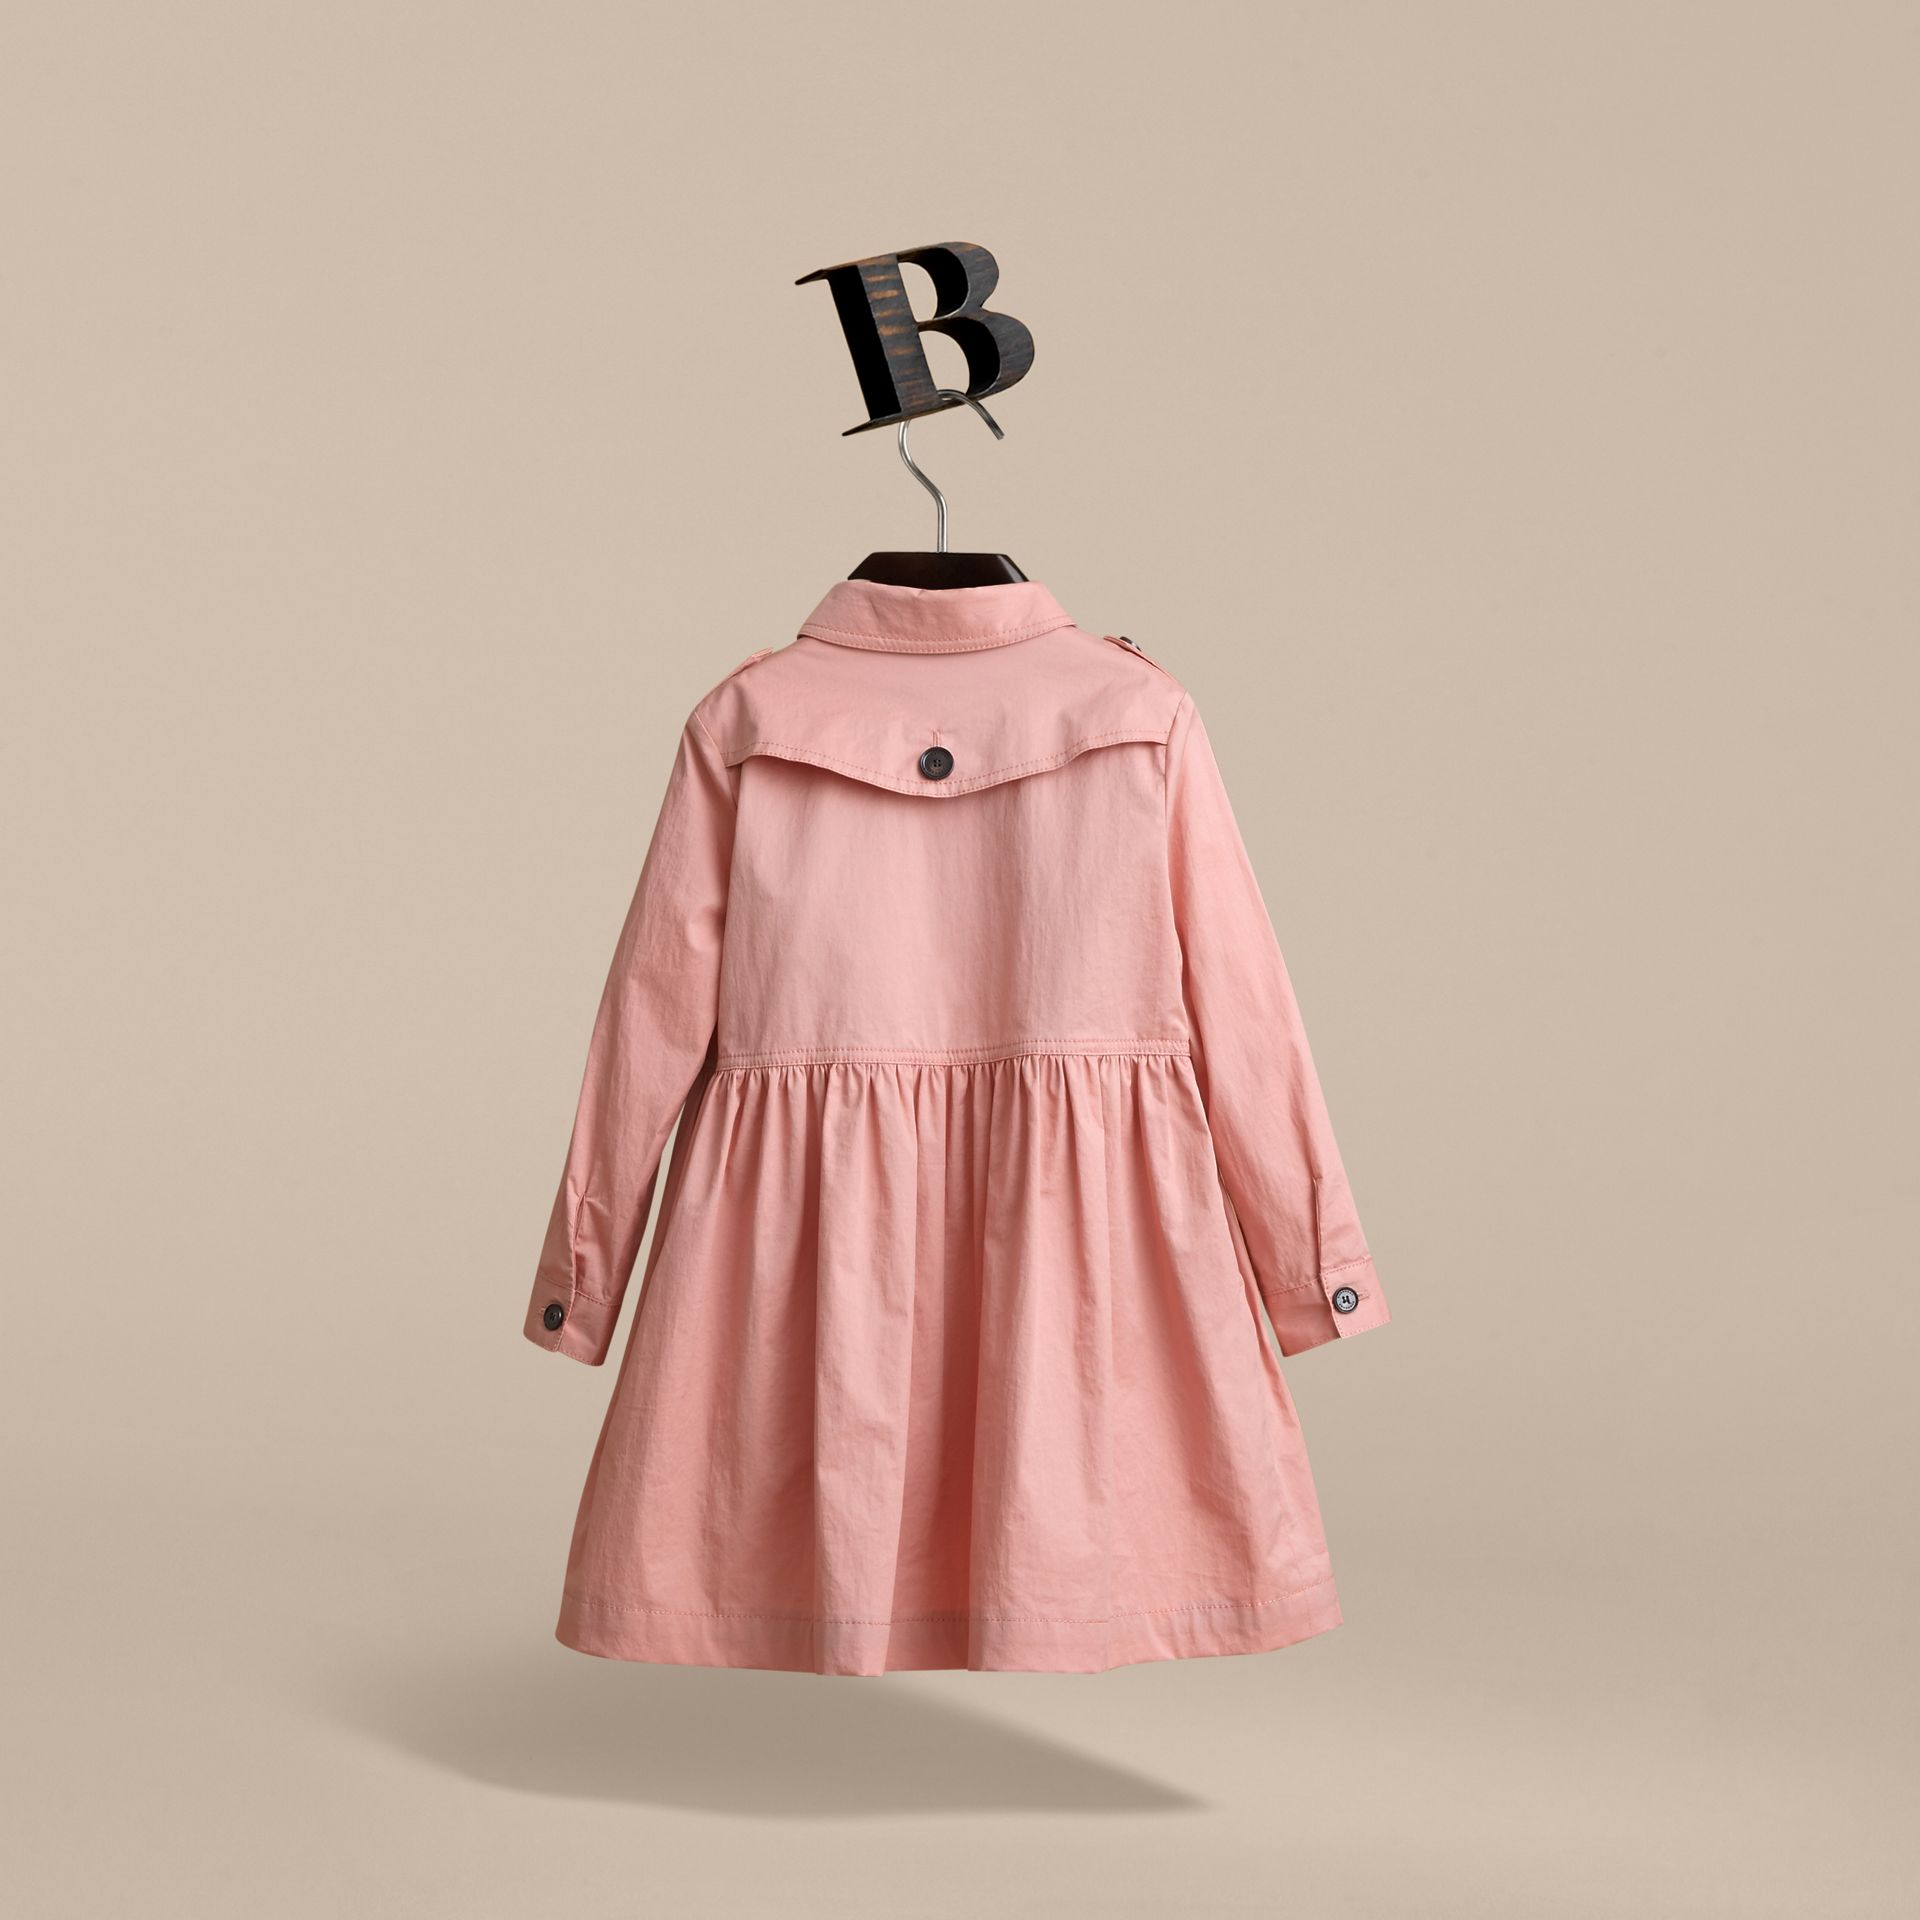 Robe trench en coton extensible avec éléments check (Rose Pâle) - Fille | Burberry - photo de la galerie 4